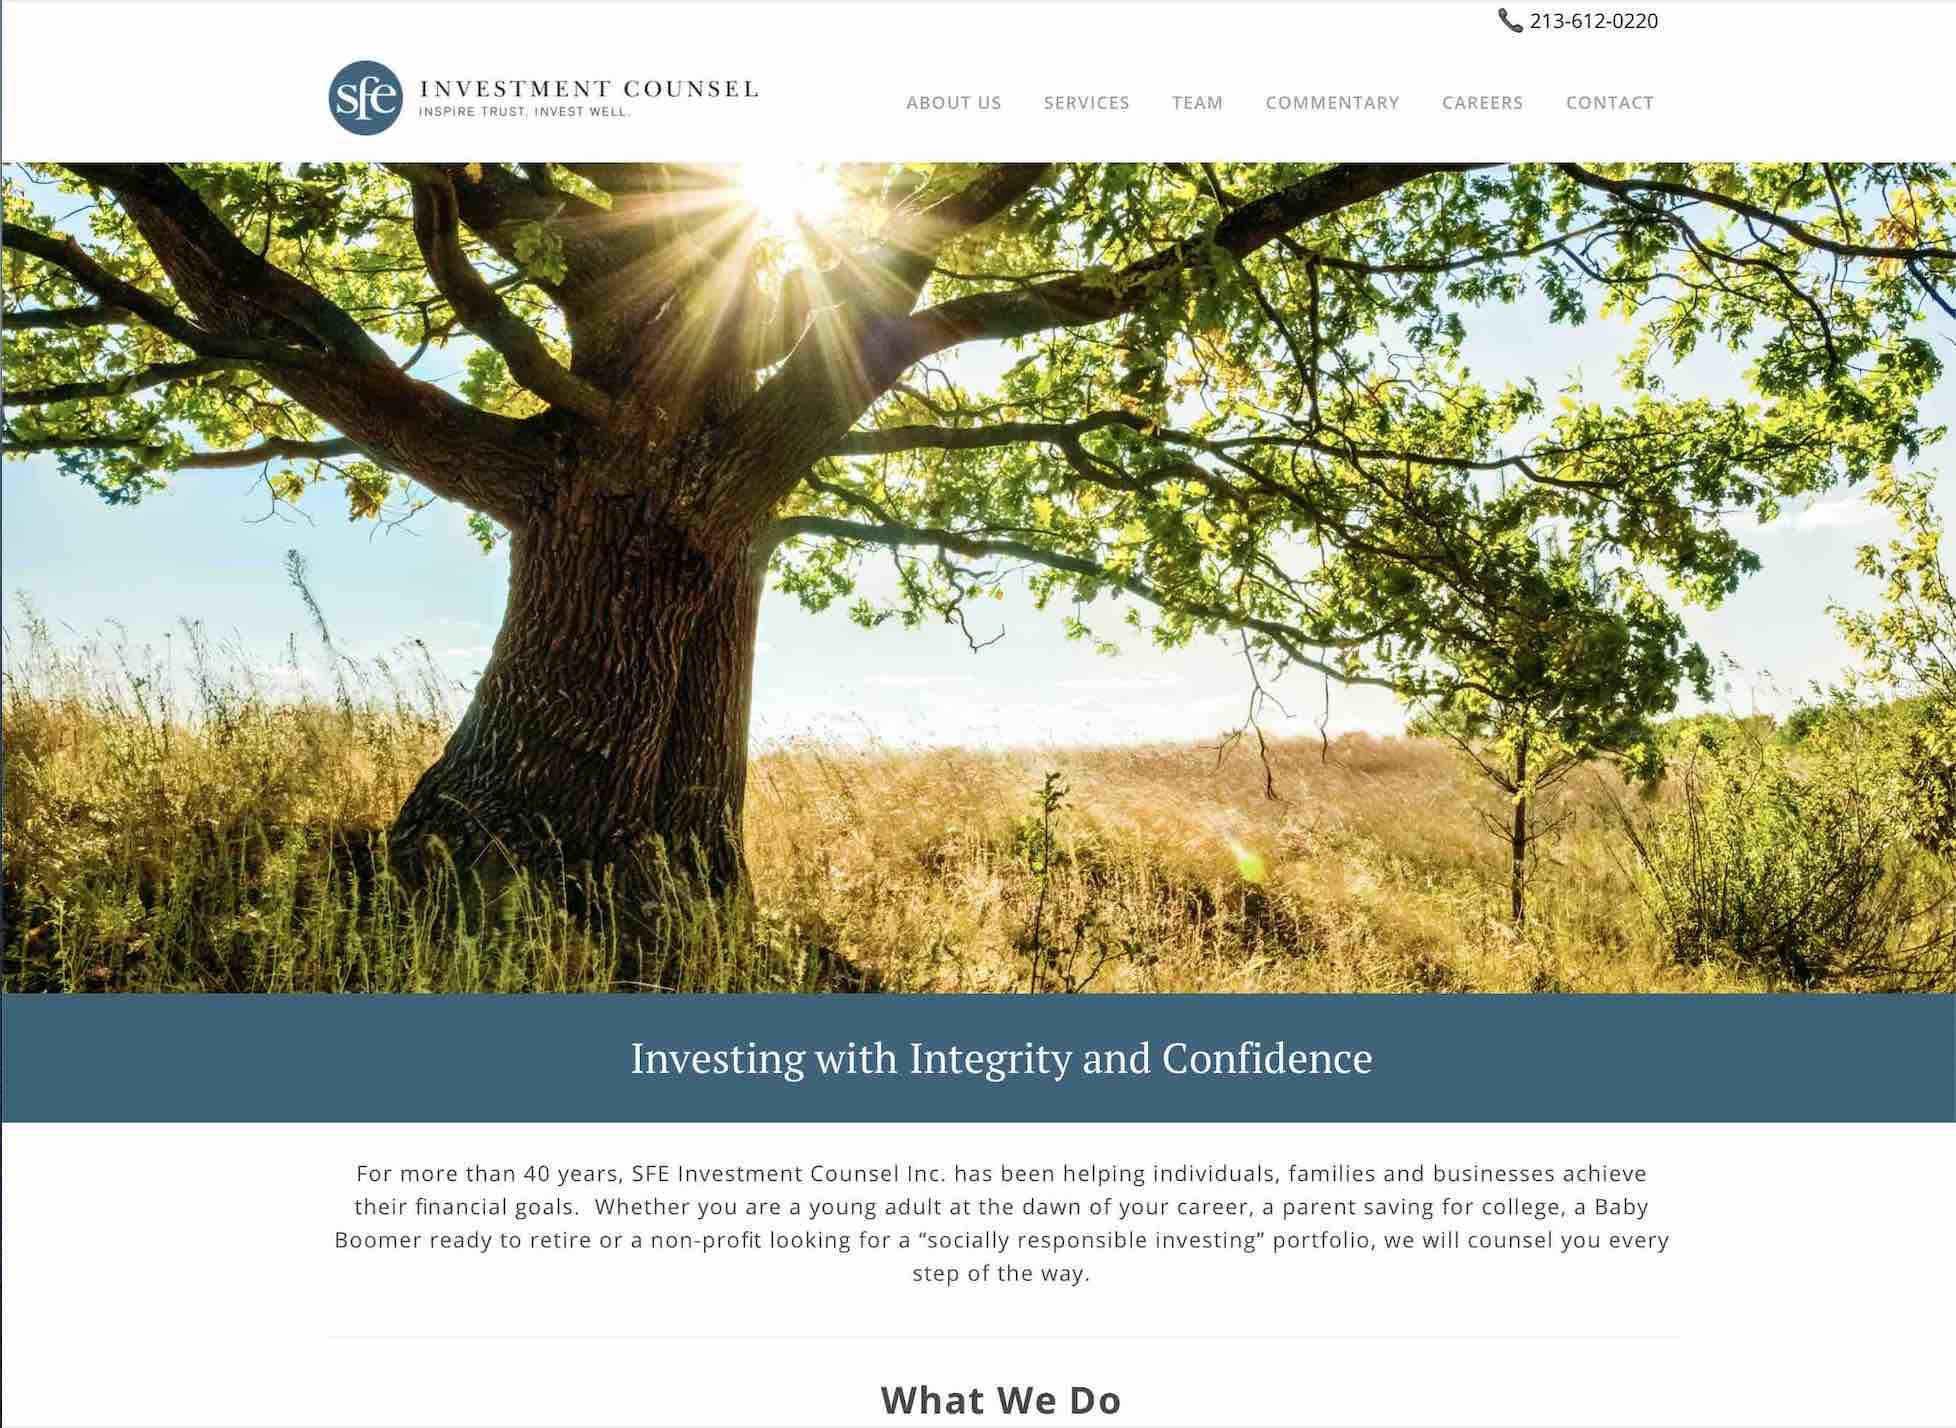 Financial Advisors website copywriting SEO and creative direction. Image includes an oak tree in a sunny meadow in California